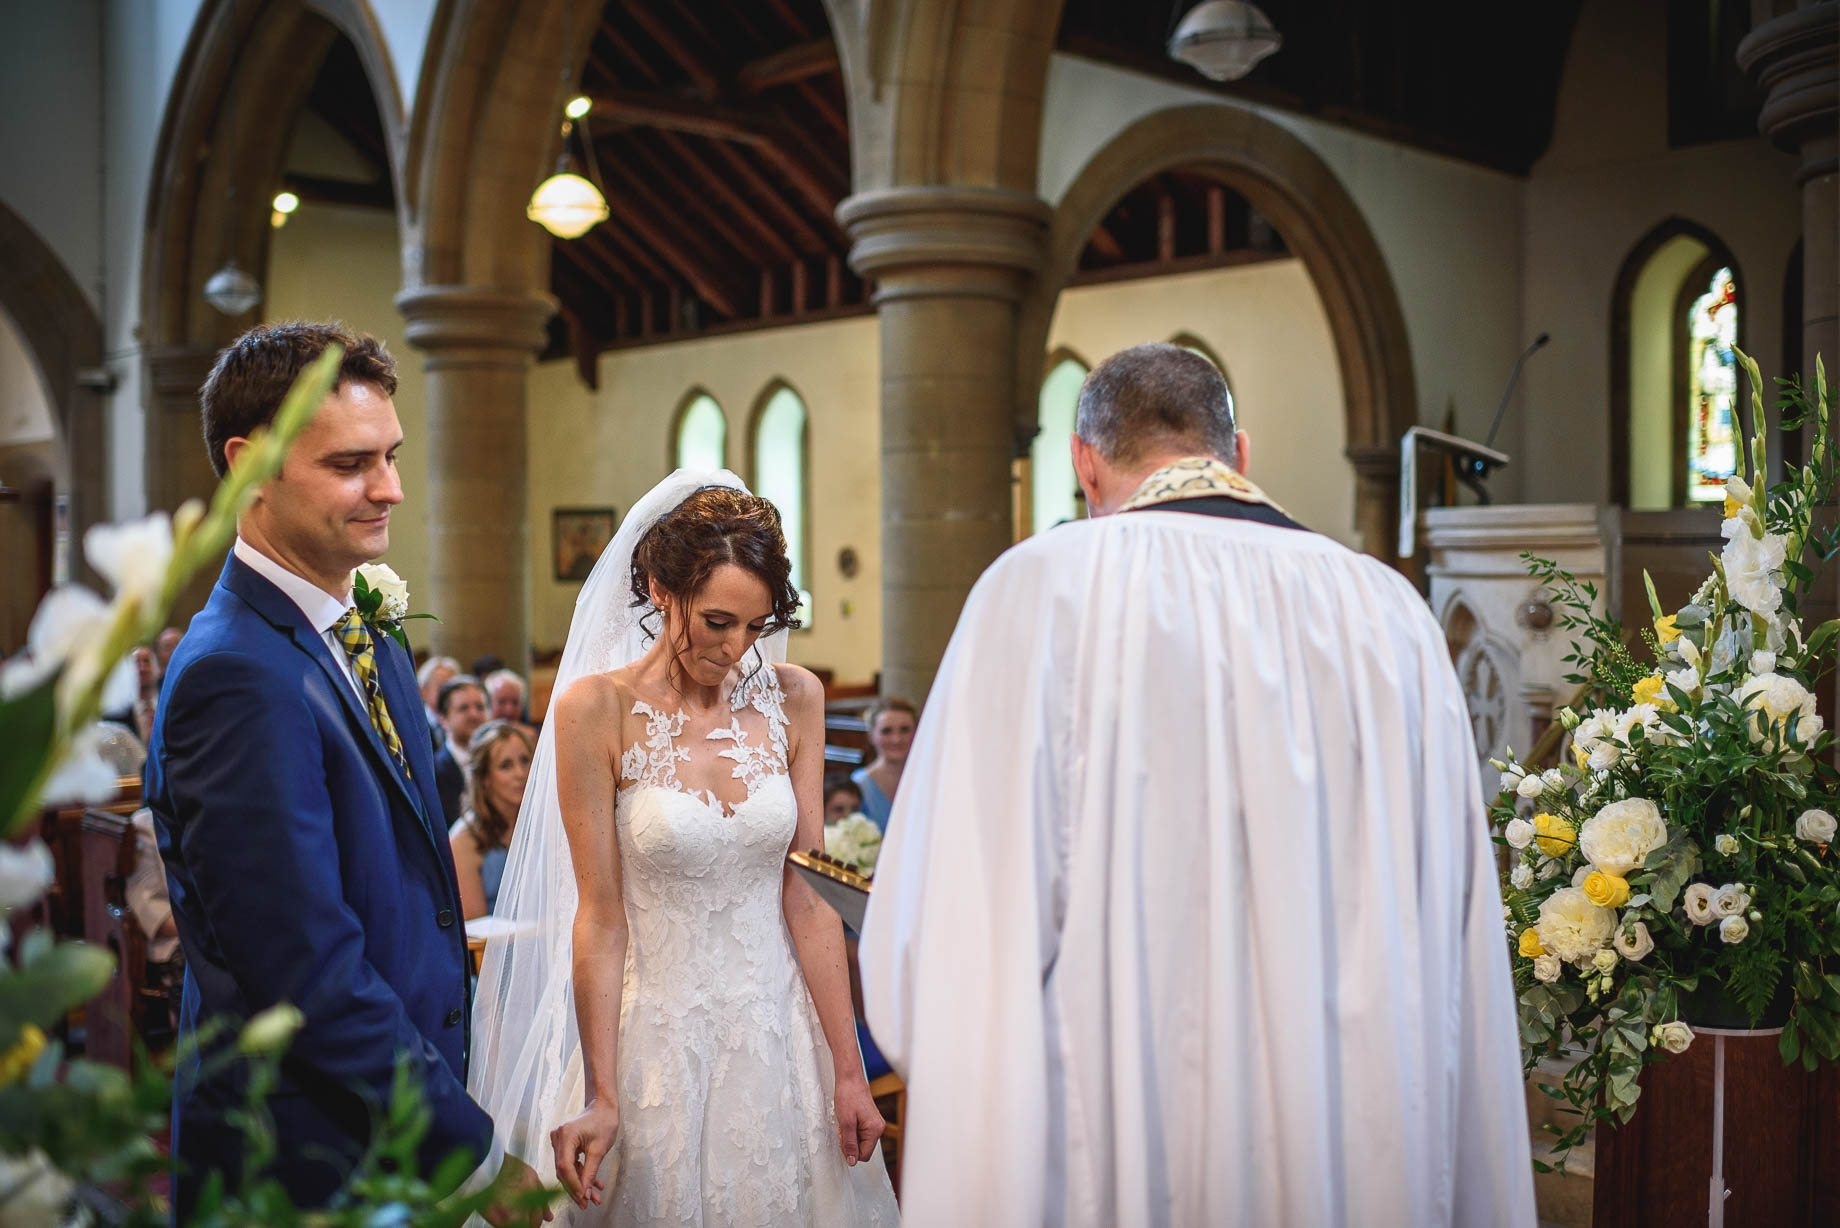 Hertfordshire wedding photography - Sarah and Stephen by Guy Collier Photography (62 of 161)